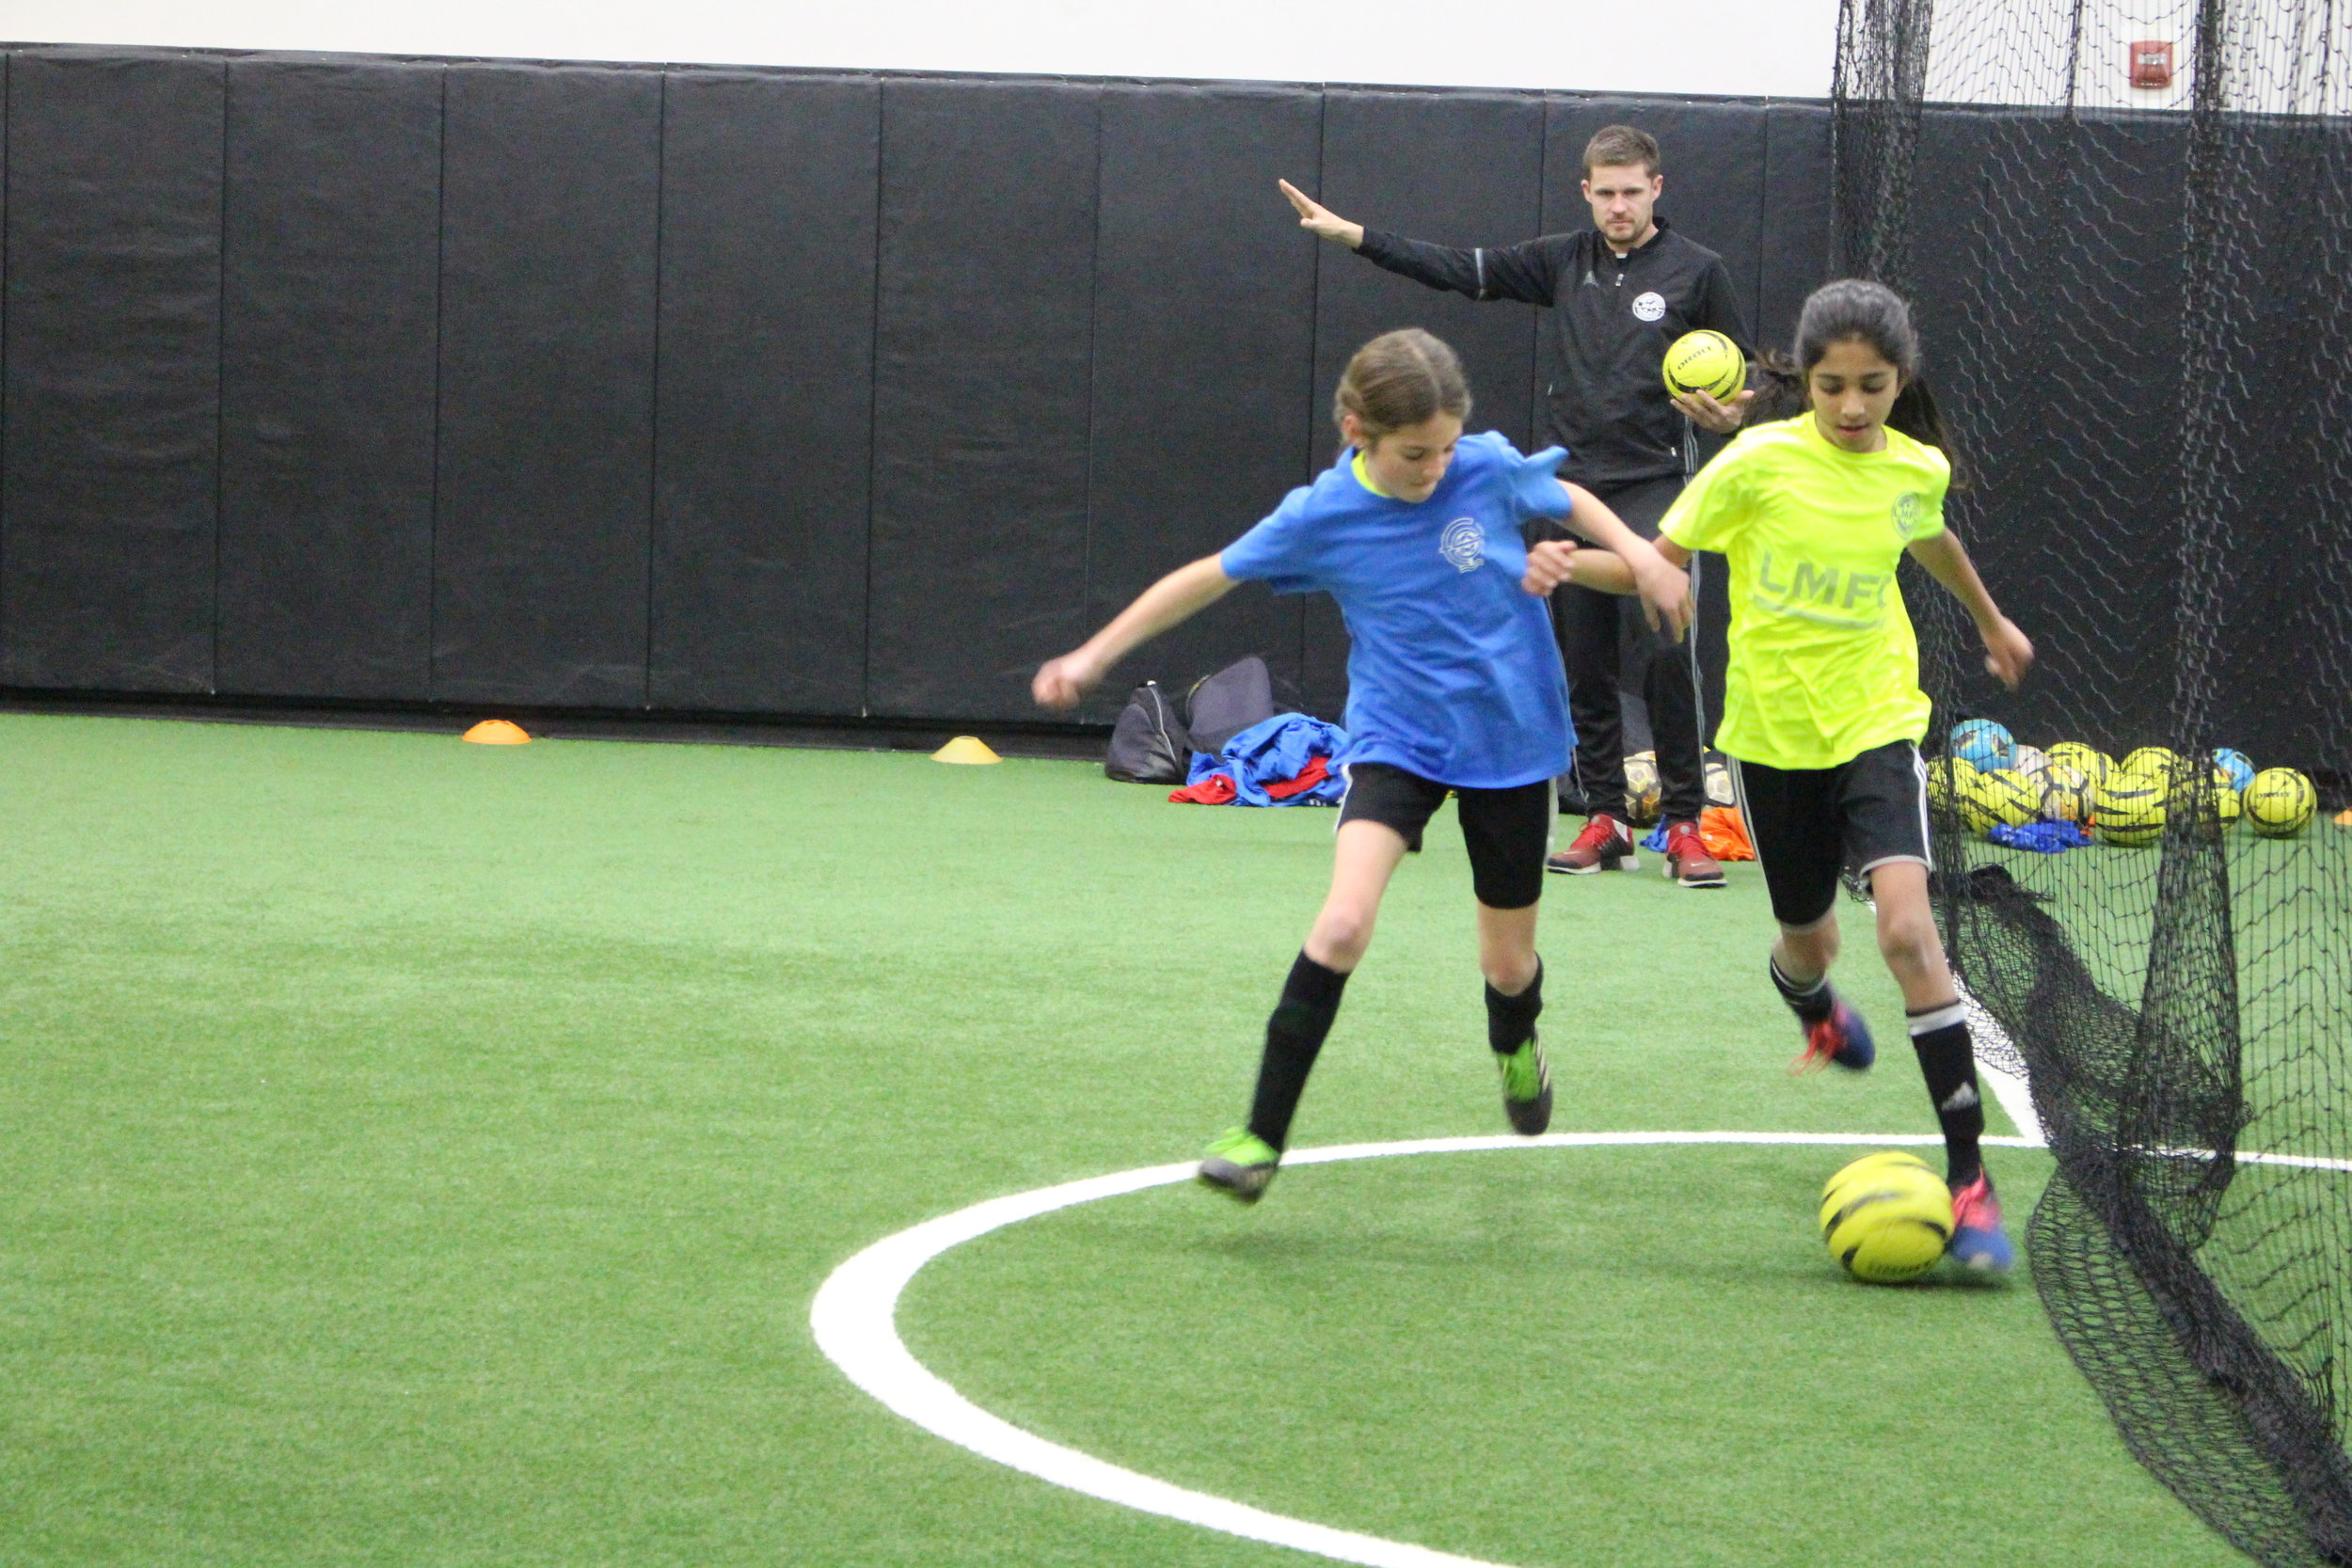 Winter 2019/20 Programs - Indoor ClinicsBoys & Girls KindergartenPre-K SoccerBoys & Girls 1st GradeBoys & Girls 2nd GradeBoys & Girls 2nd/3rd GradeBoys & Girls 3rd-5th GradeLMFC U8 AcademyLMFC Training